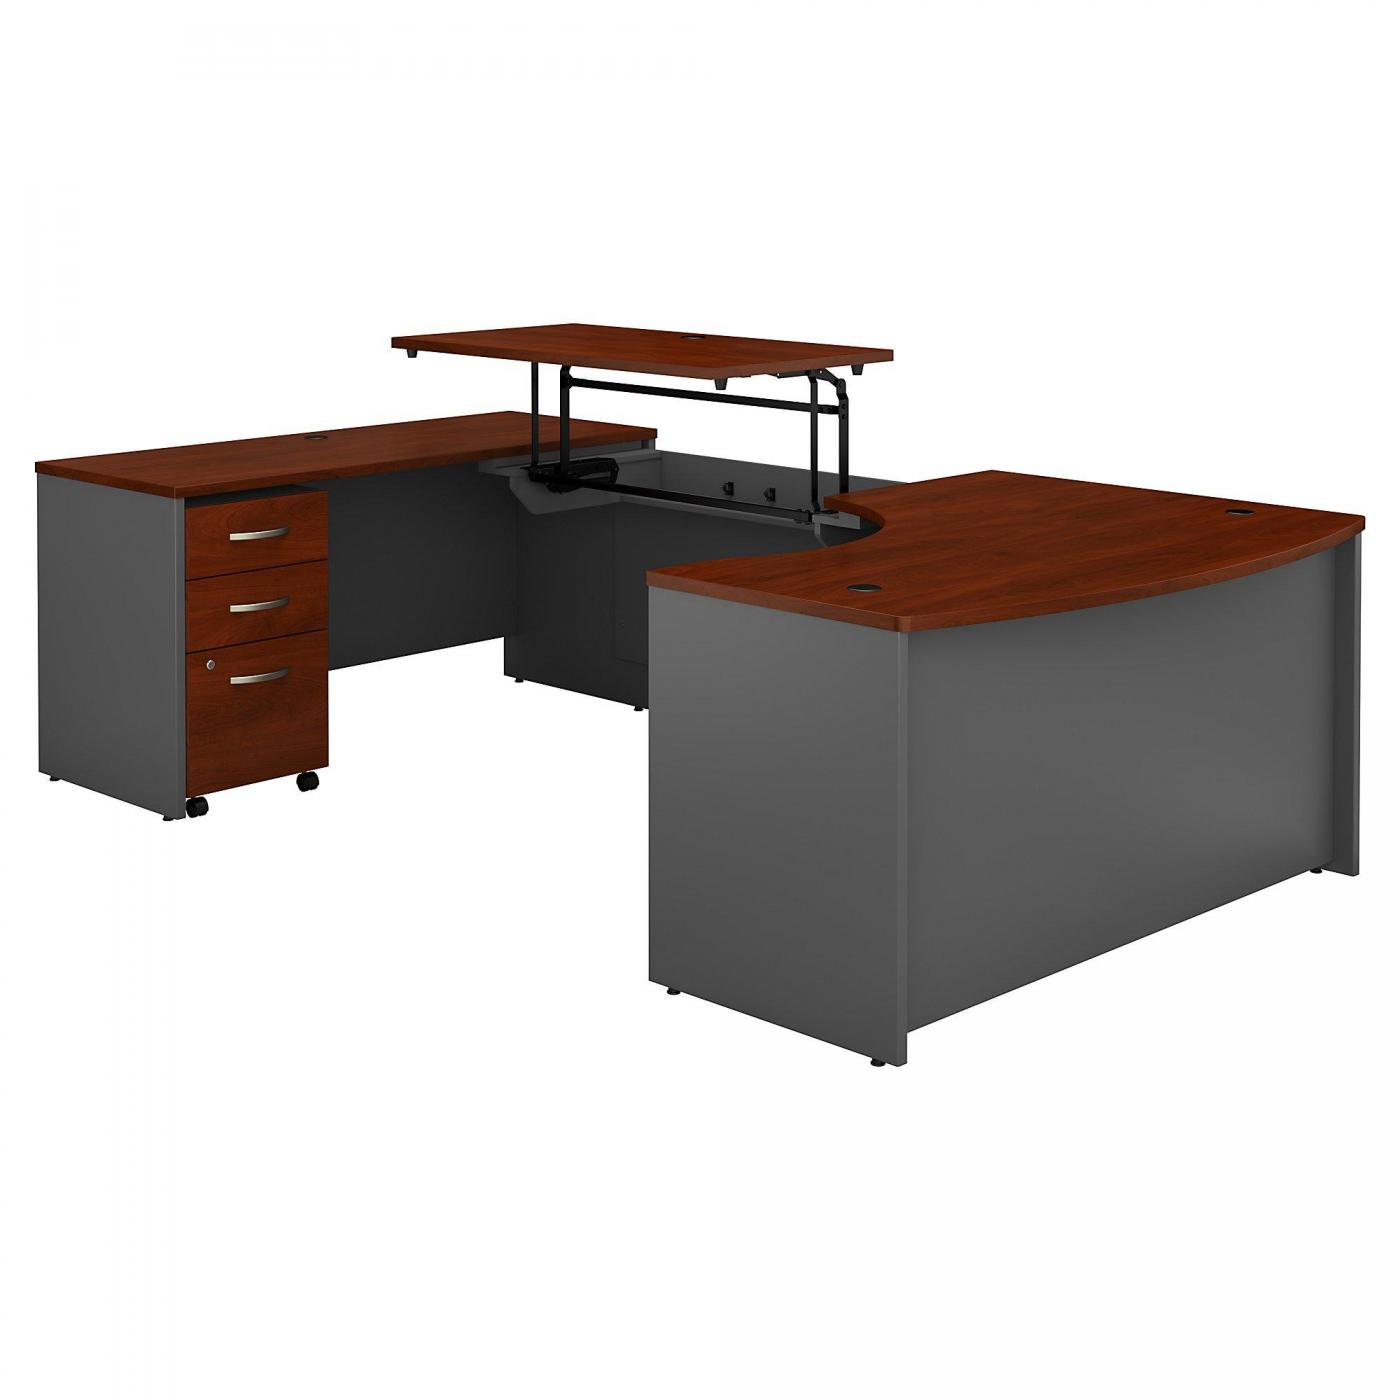 </b></font><b>BUSH BUSINESS FURNITURE SERIES C 60W X 43D RIGHT HAND 3 POSITION SIT TO STAND U SHAPED DESK WITH MOBILE FILE CABINET. FREE SHIPPING. VIDEO:</b></font>  VIDEO BELOW. <p>RATING:&#11088;&#11088;&#11088;&#11088;</b></font></b>